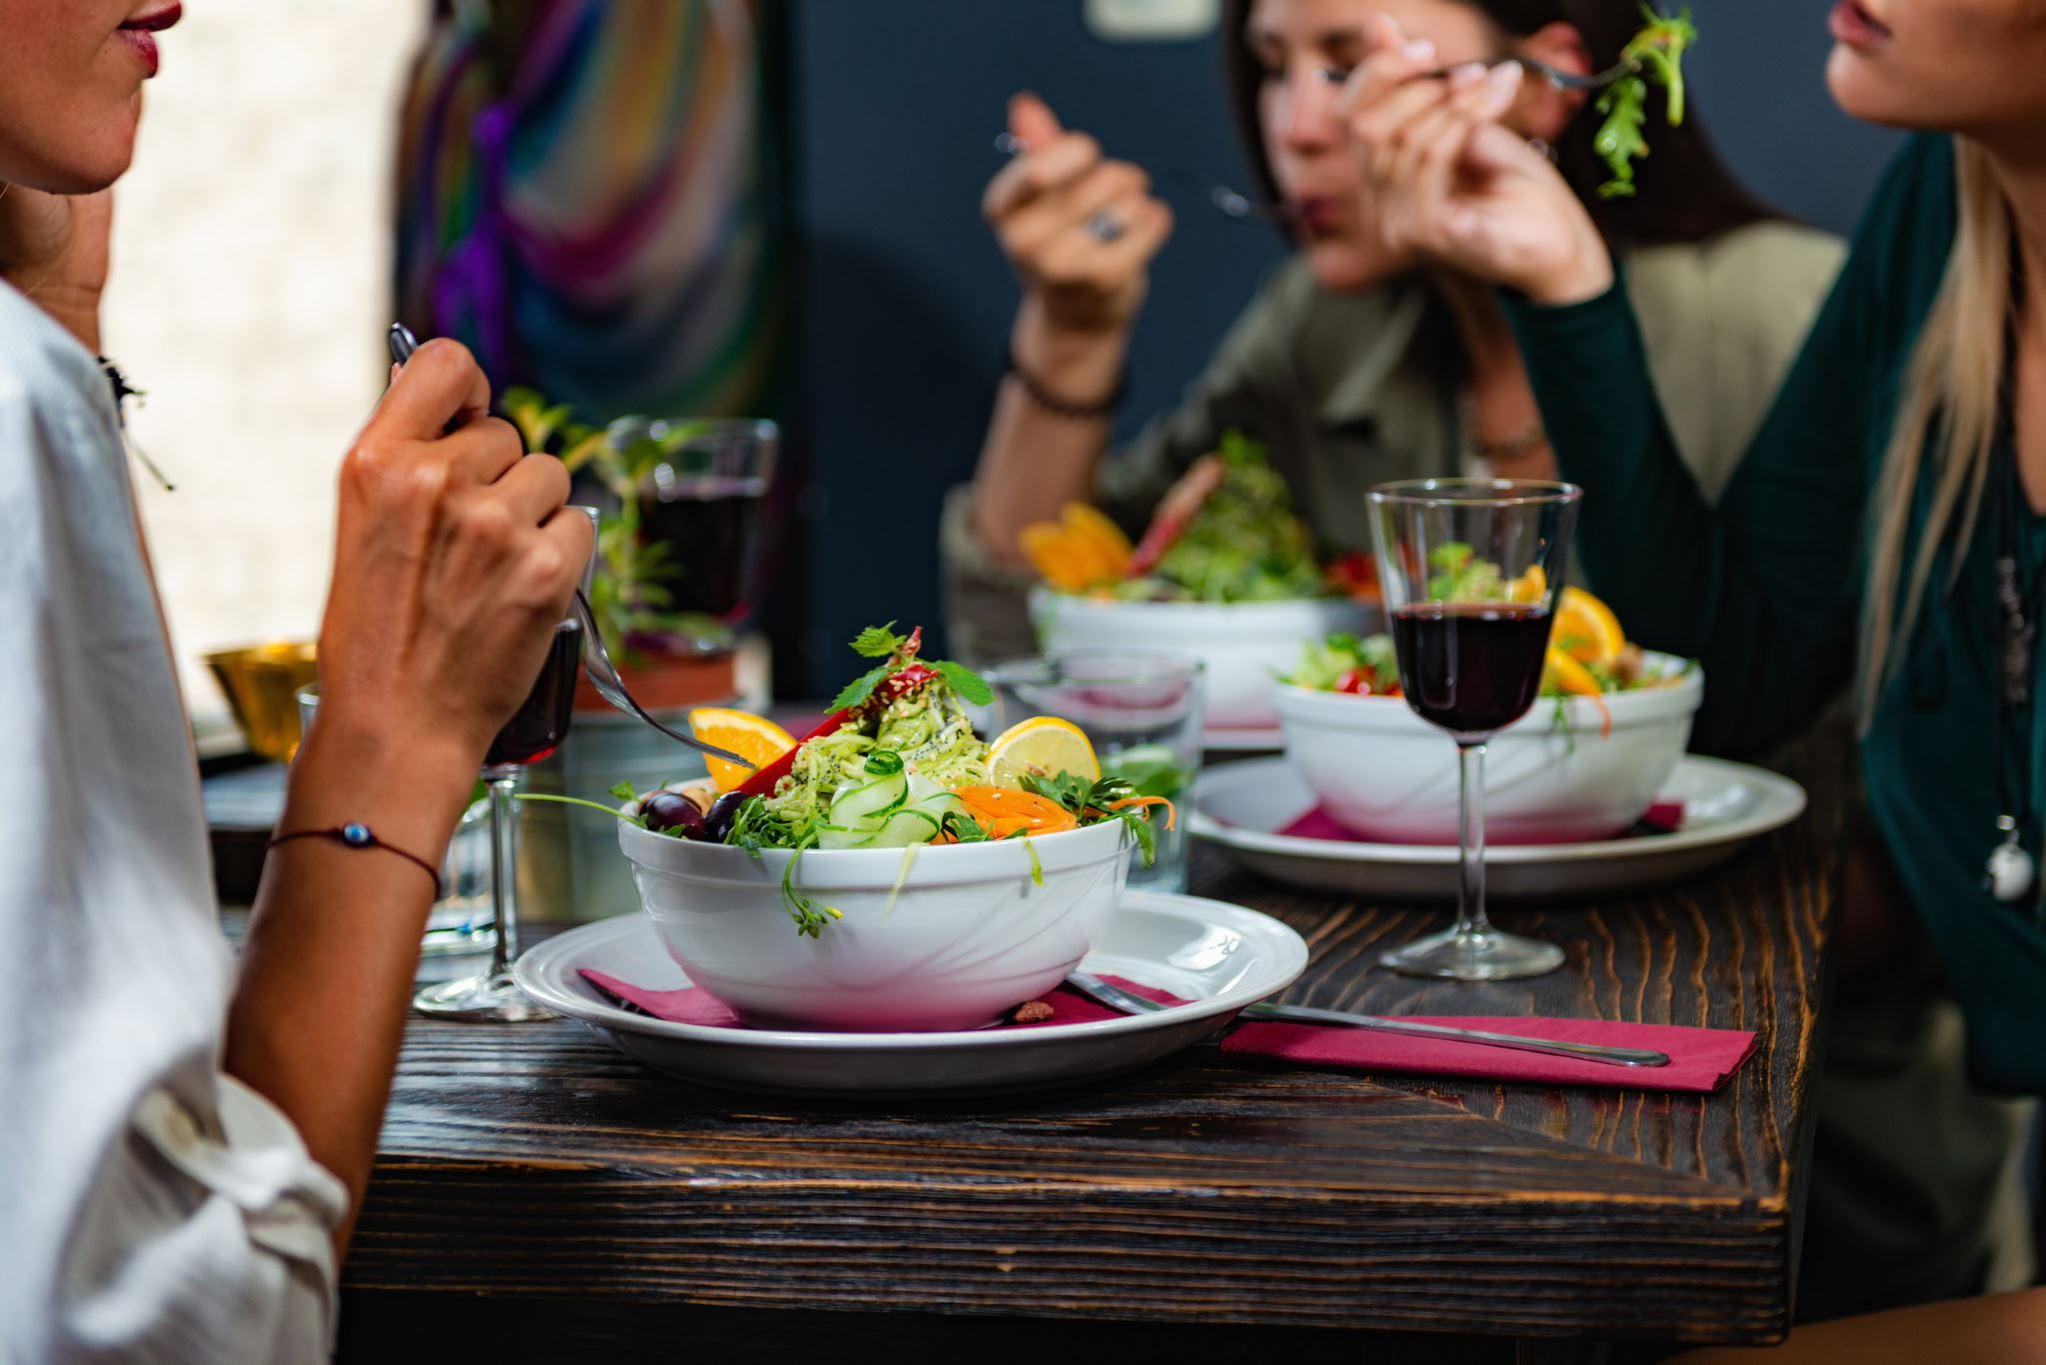 Negligent Restaurateurs and the Risk of Foodborne Illness